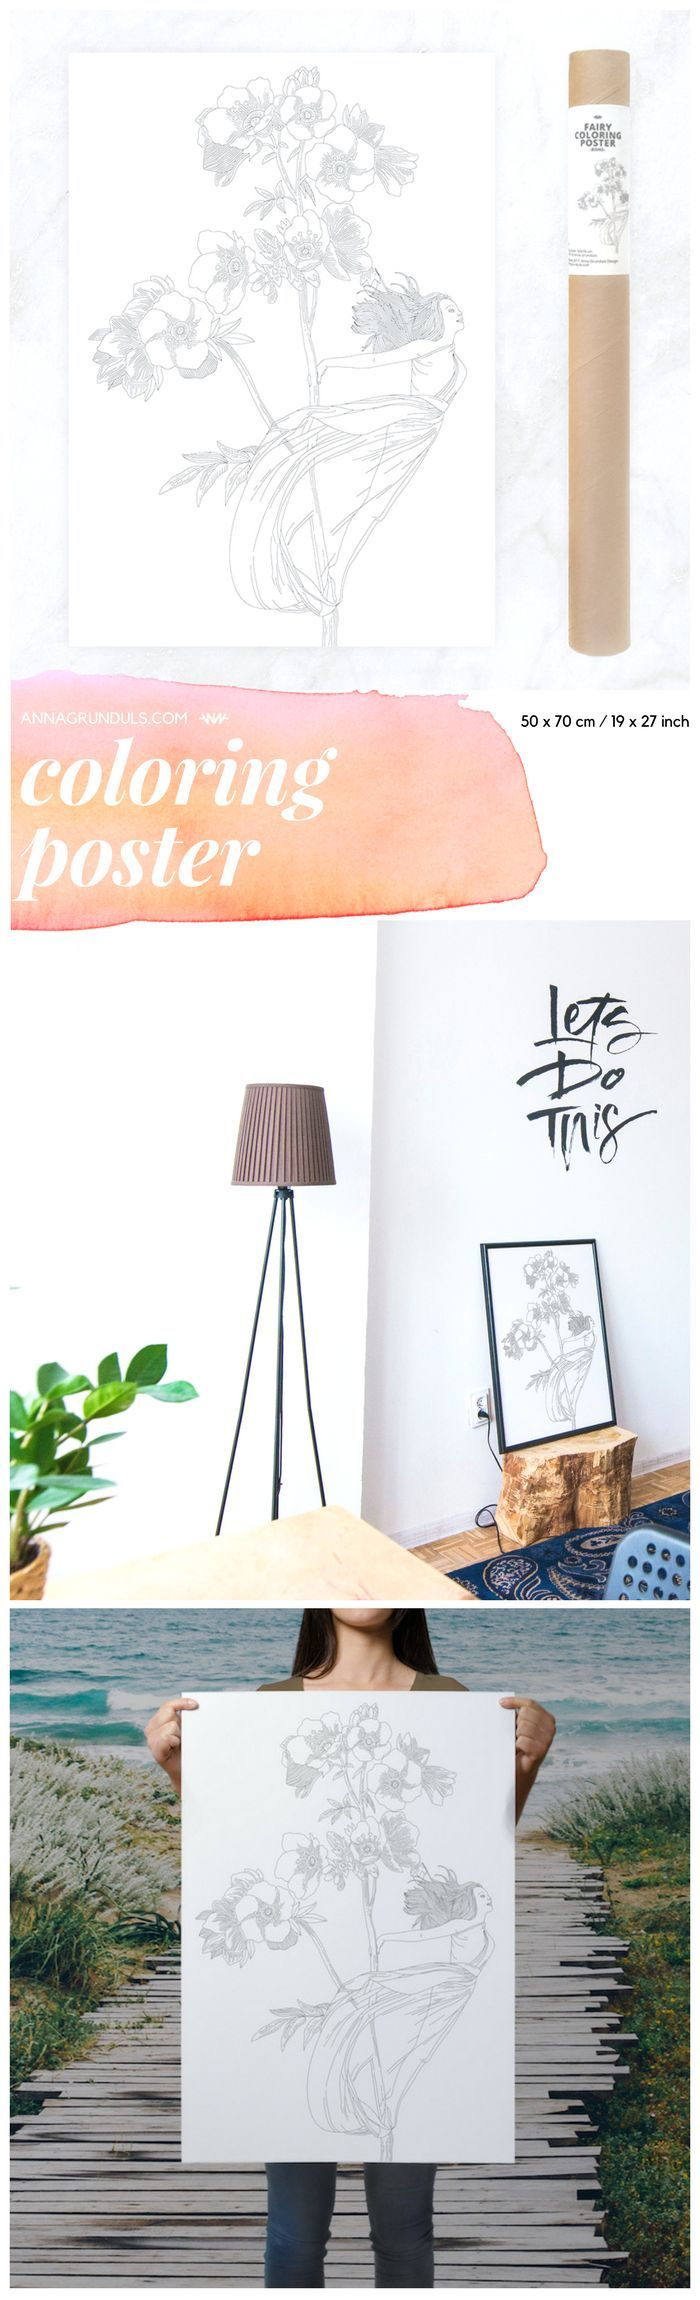 This is one magical coloring page! I love this boho styled poster for a wall decor!